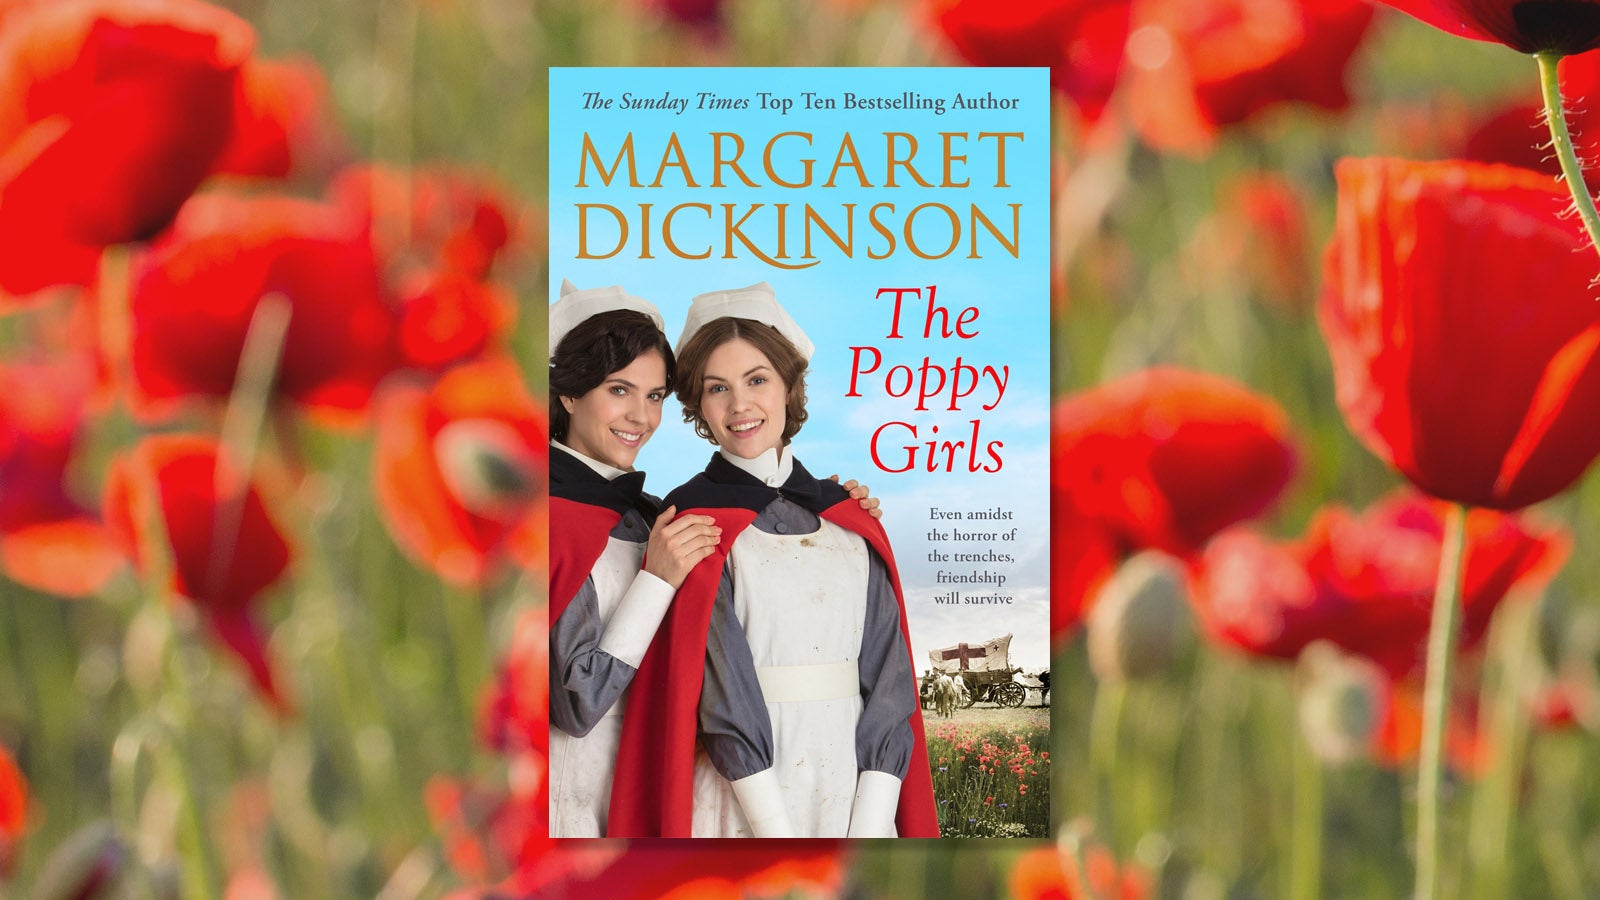 Margaret Dickinson The Poppy Girls book cover with a background of poppies